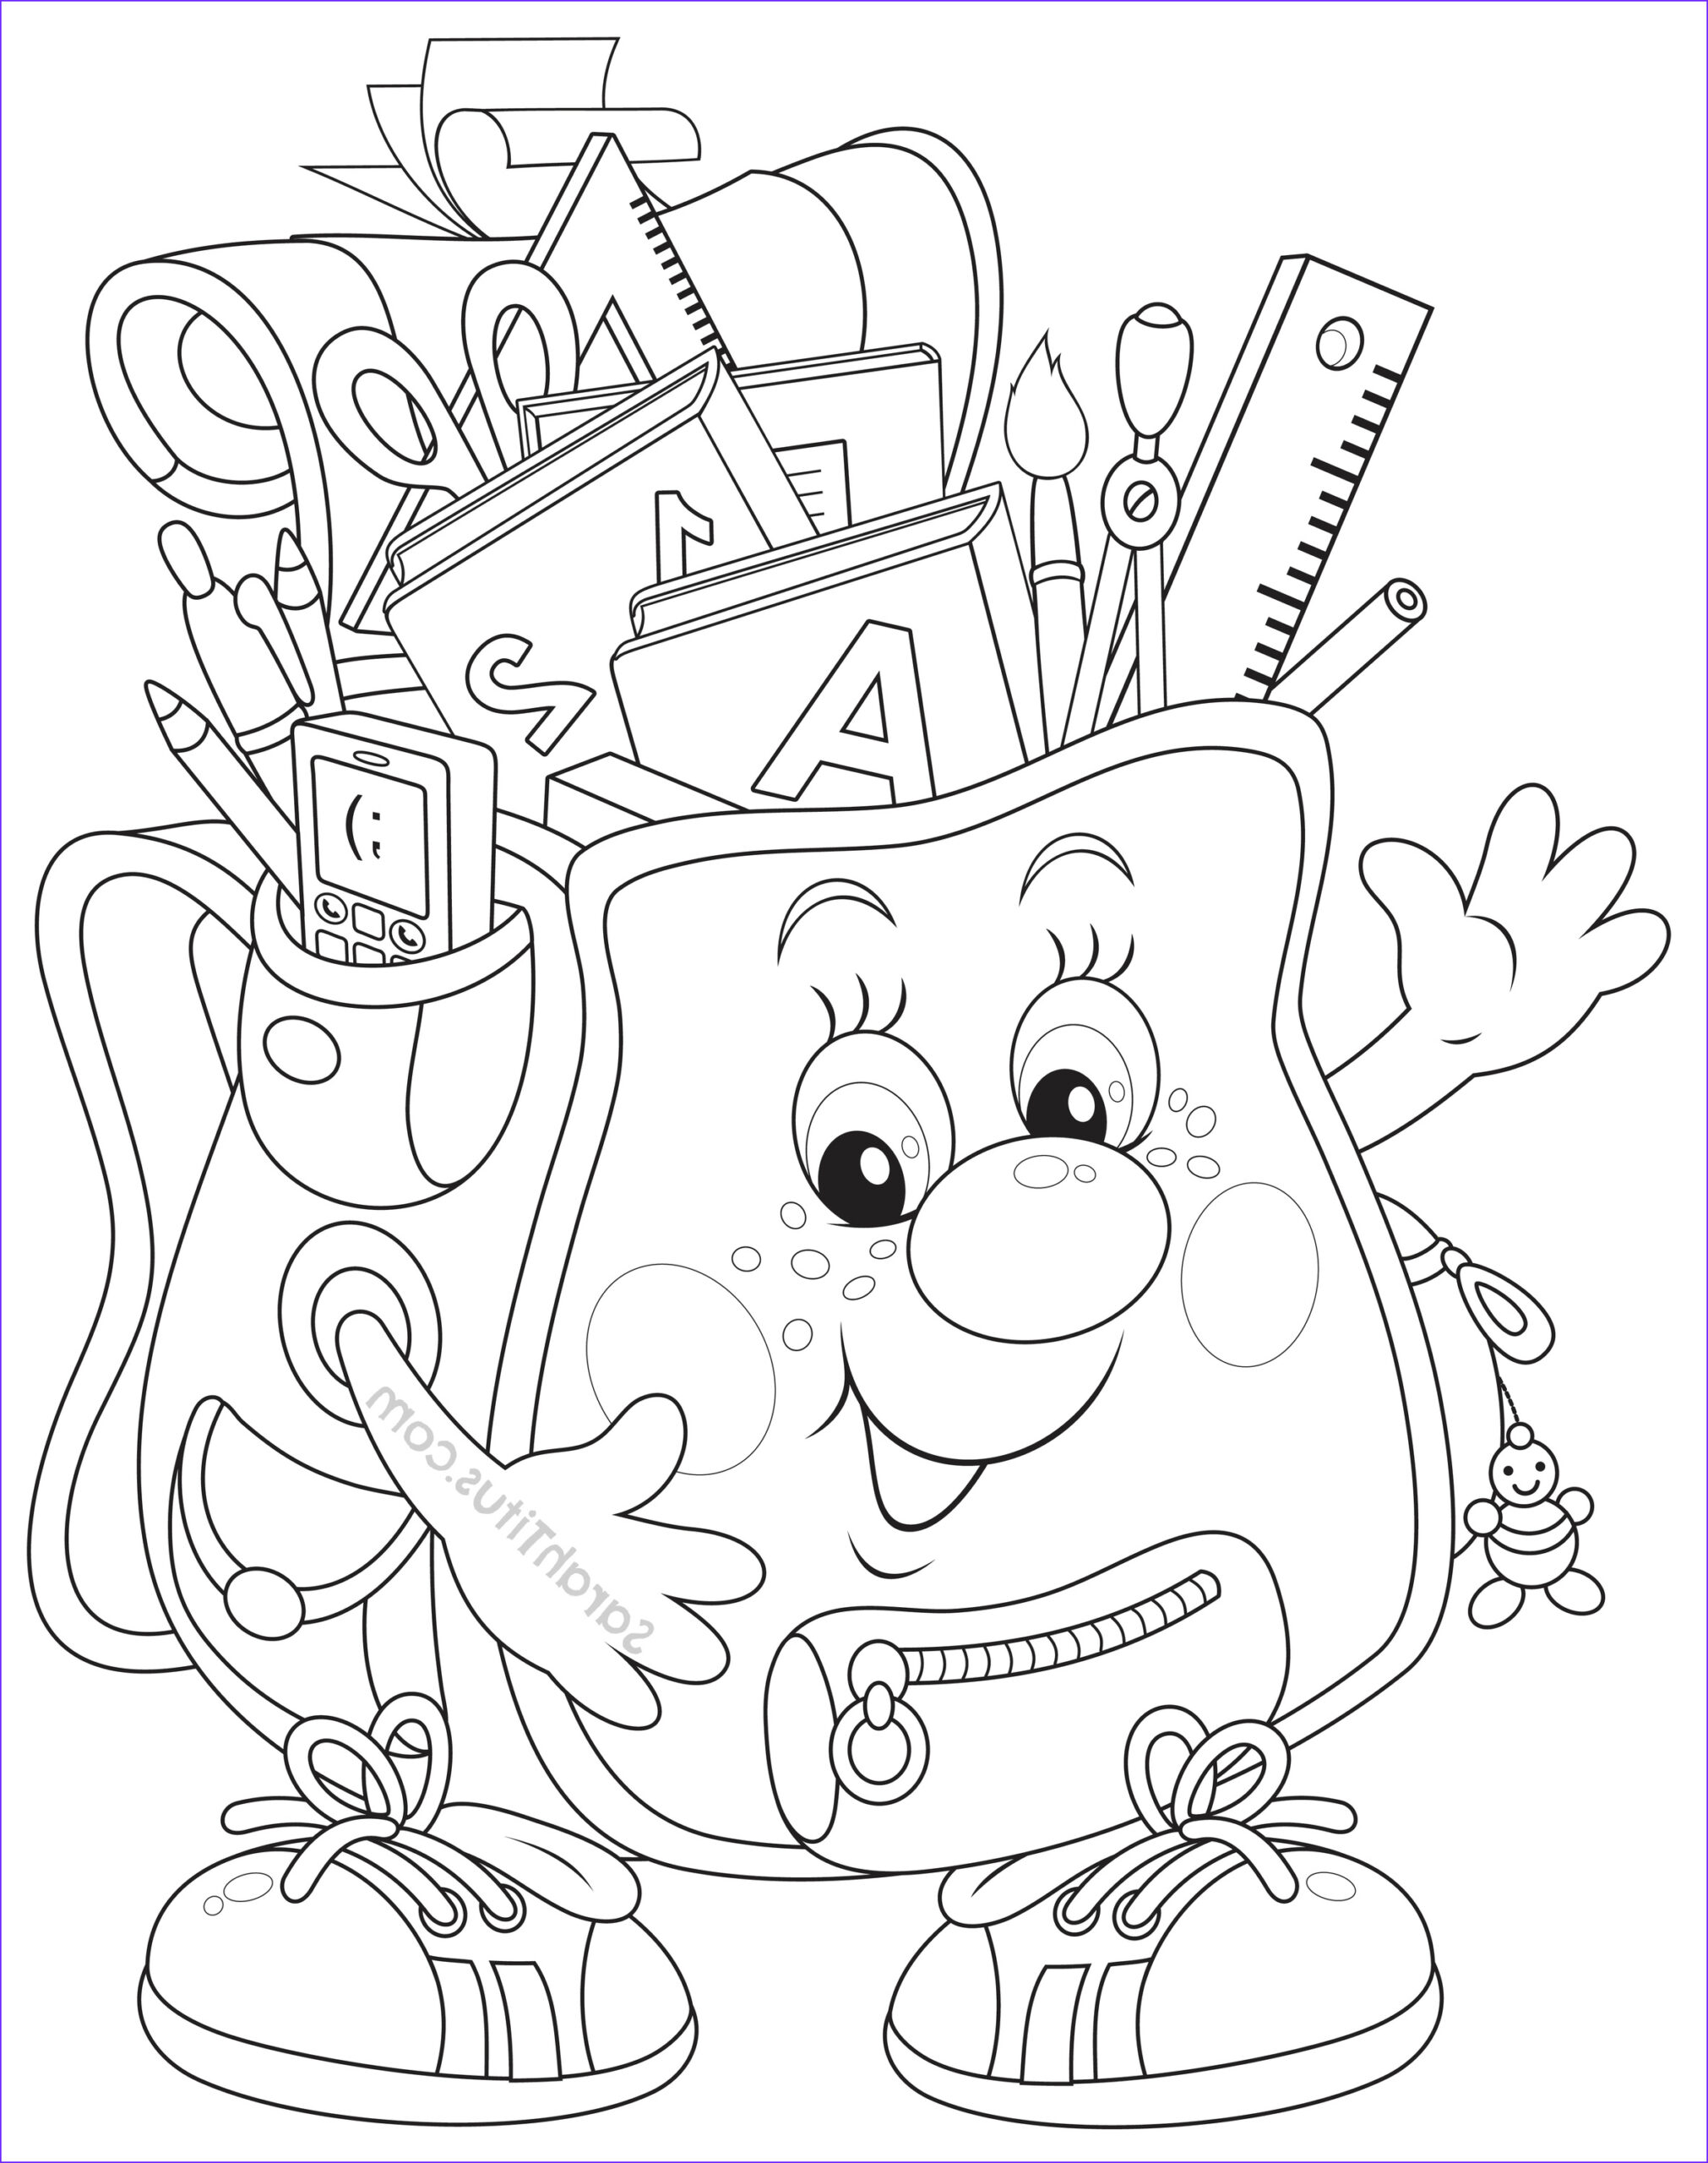 School Coloring Pages New Photography Back to School Coloring Pages Sarah Titus